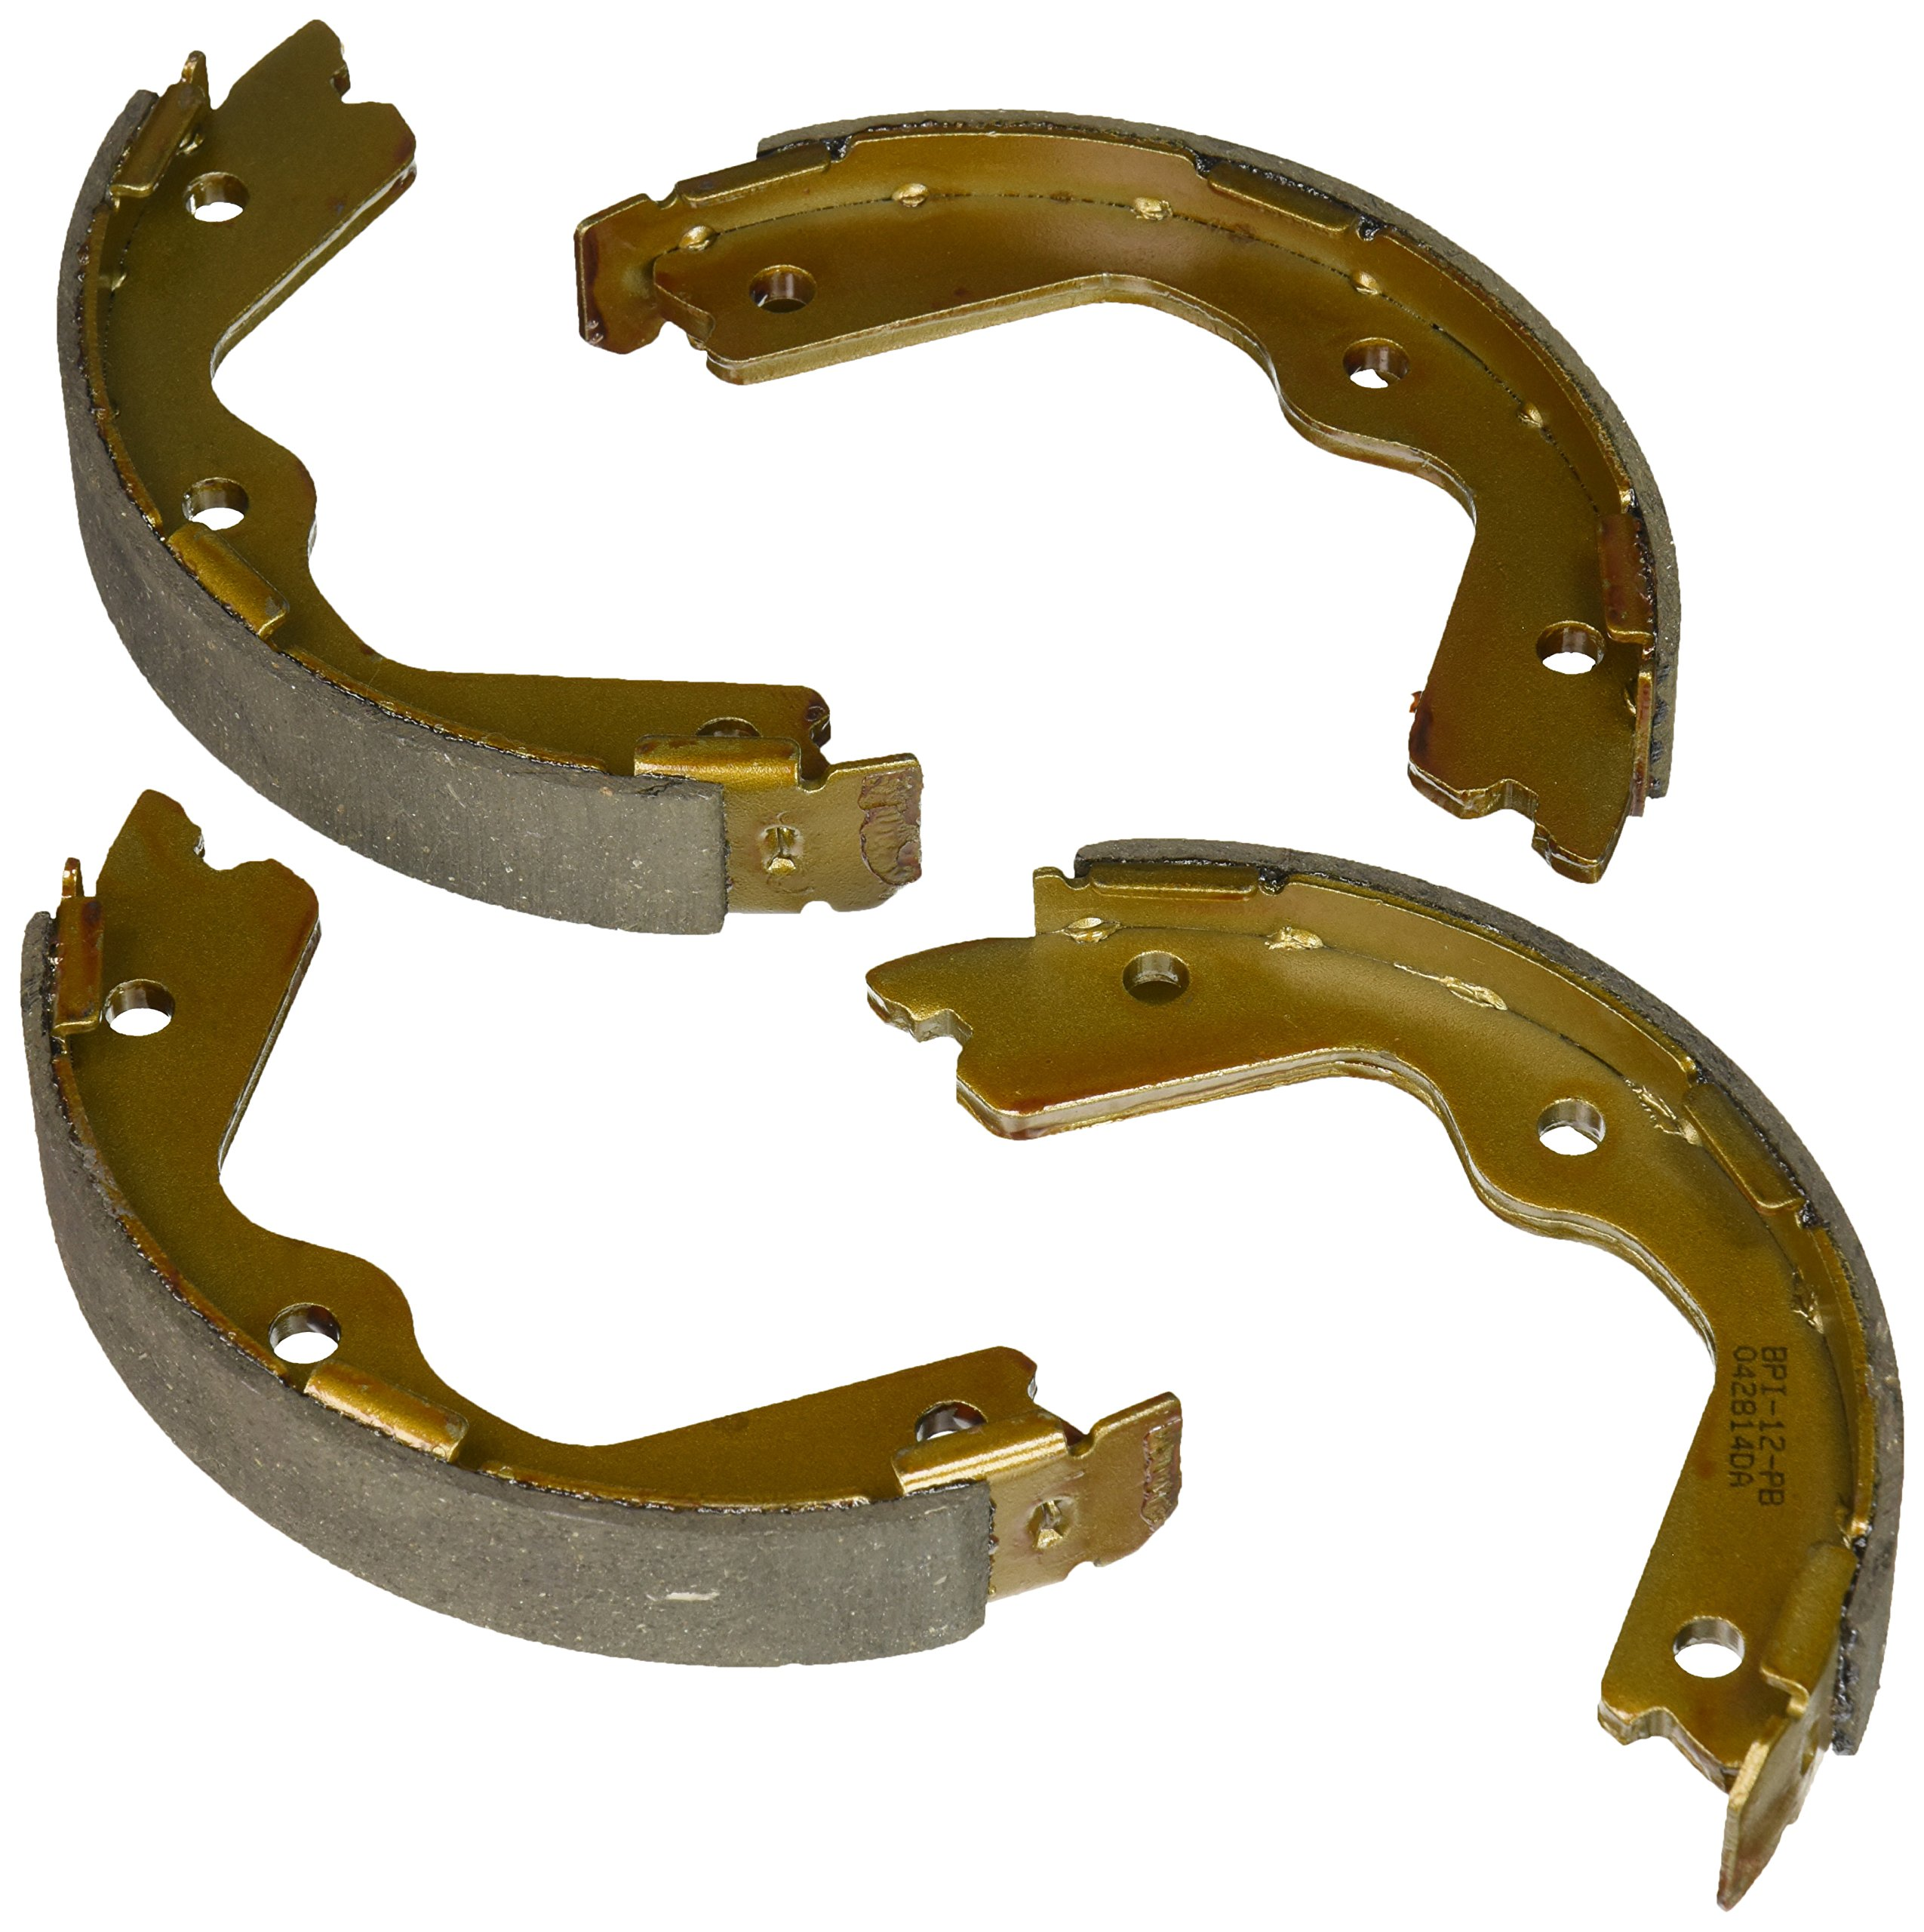 Raybestos 878PG Professional Grade Drum-in-Hat Parking Brake Shoe Set